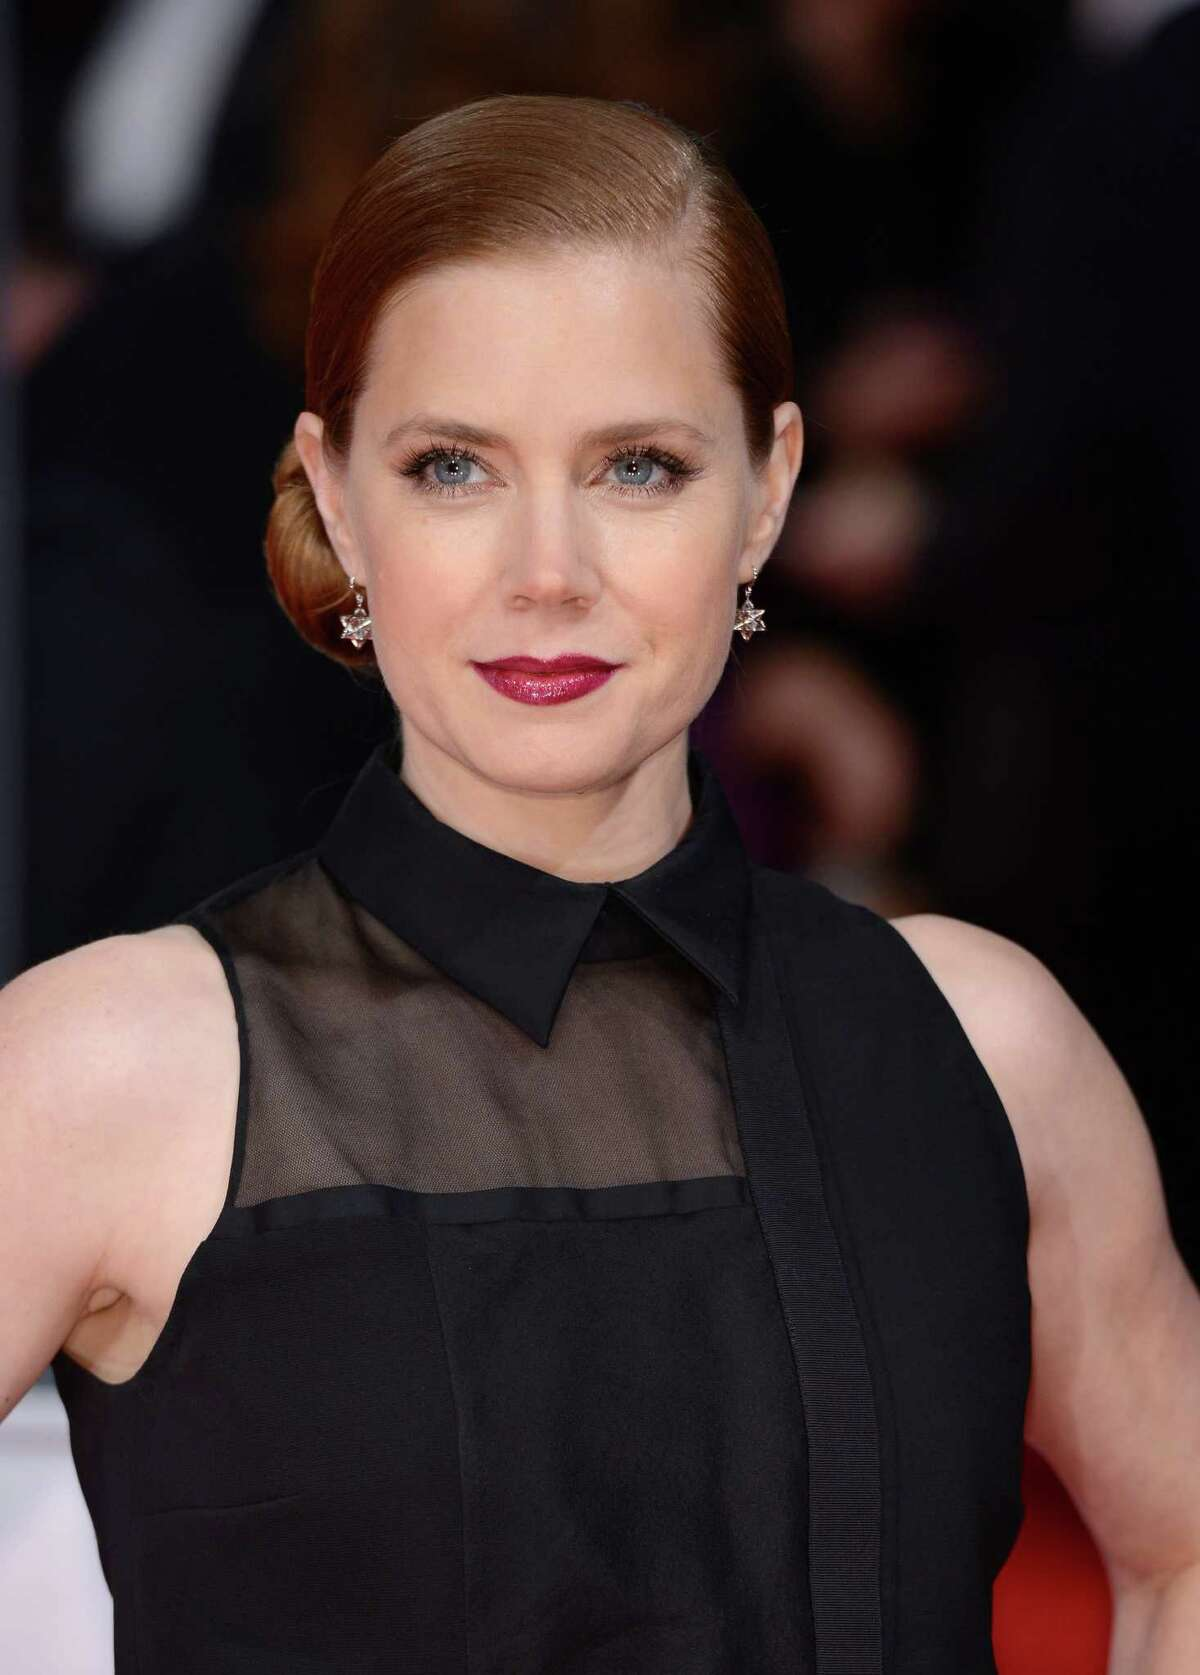 Amy Adams celebrates her 40th birthday on Aug. 20. Yes, 40. We're betting her cutesy persona, as best embraced in 2009's 'Julie & Julia', in addition to her skin that seems to defy gravity sealed her fate as a forever-young actress.Keep clicking to see what other stars embody youth, no matter how old they get.